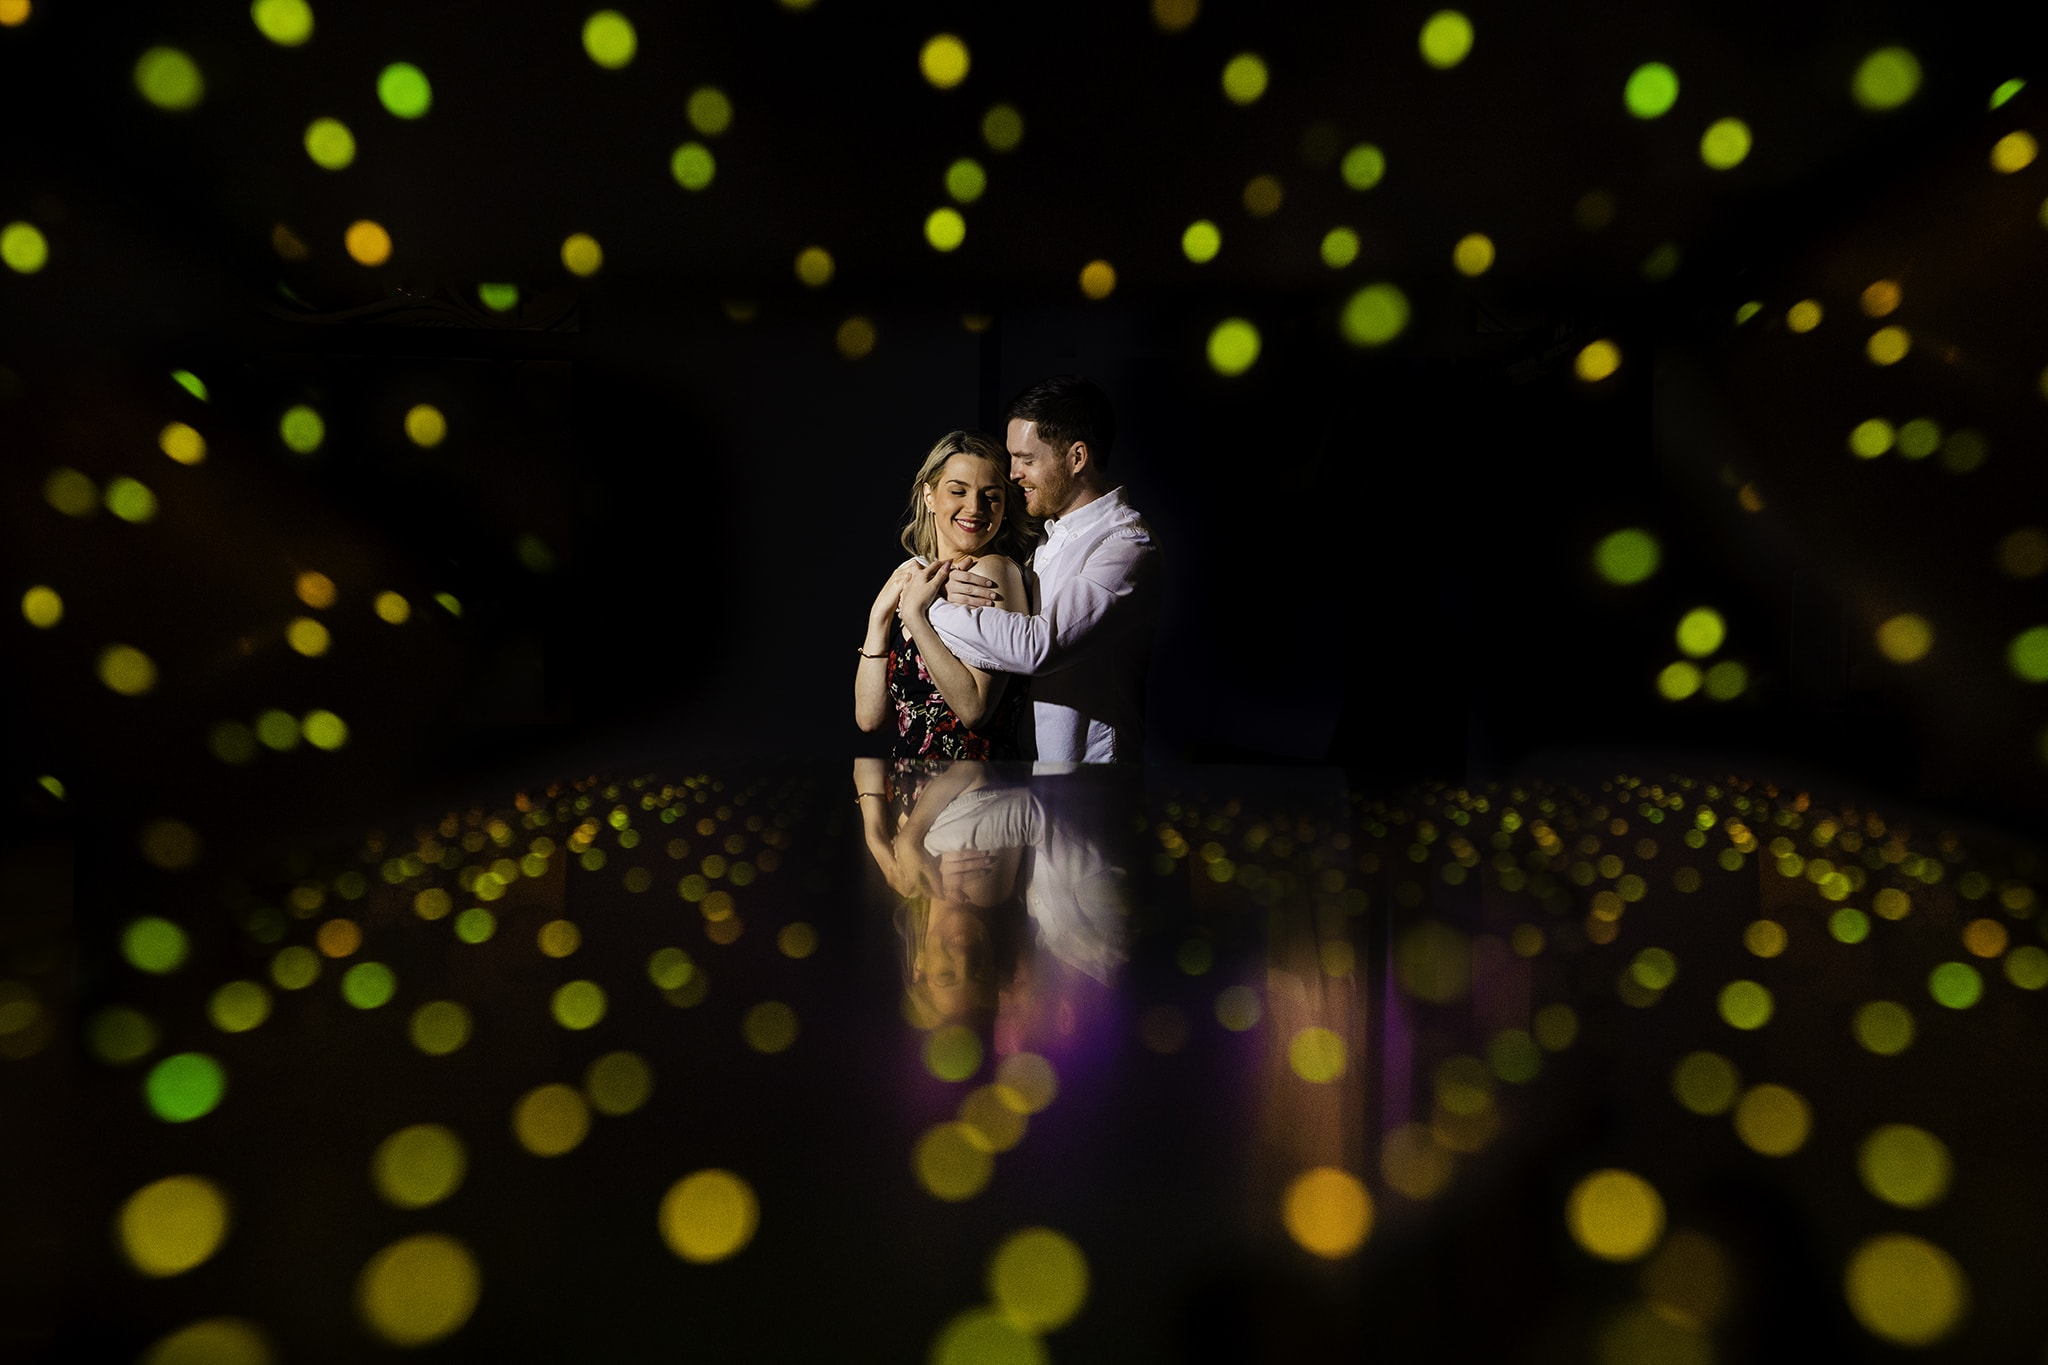 Man wraps arms around woman with lights all around them at Aloft Hotel in downtown Orlando by Orlando Wedding Photographer Studio 22 Photography